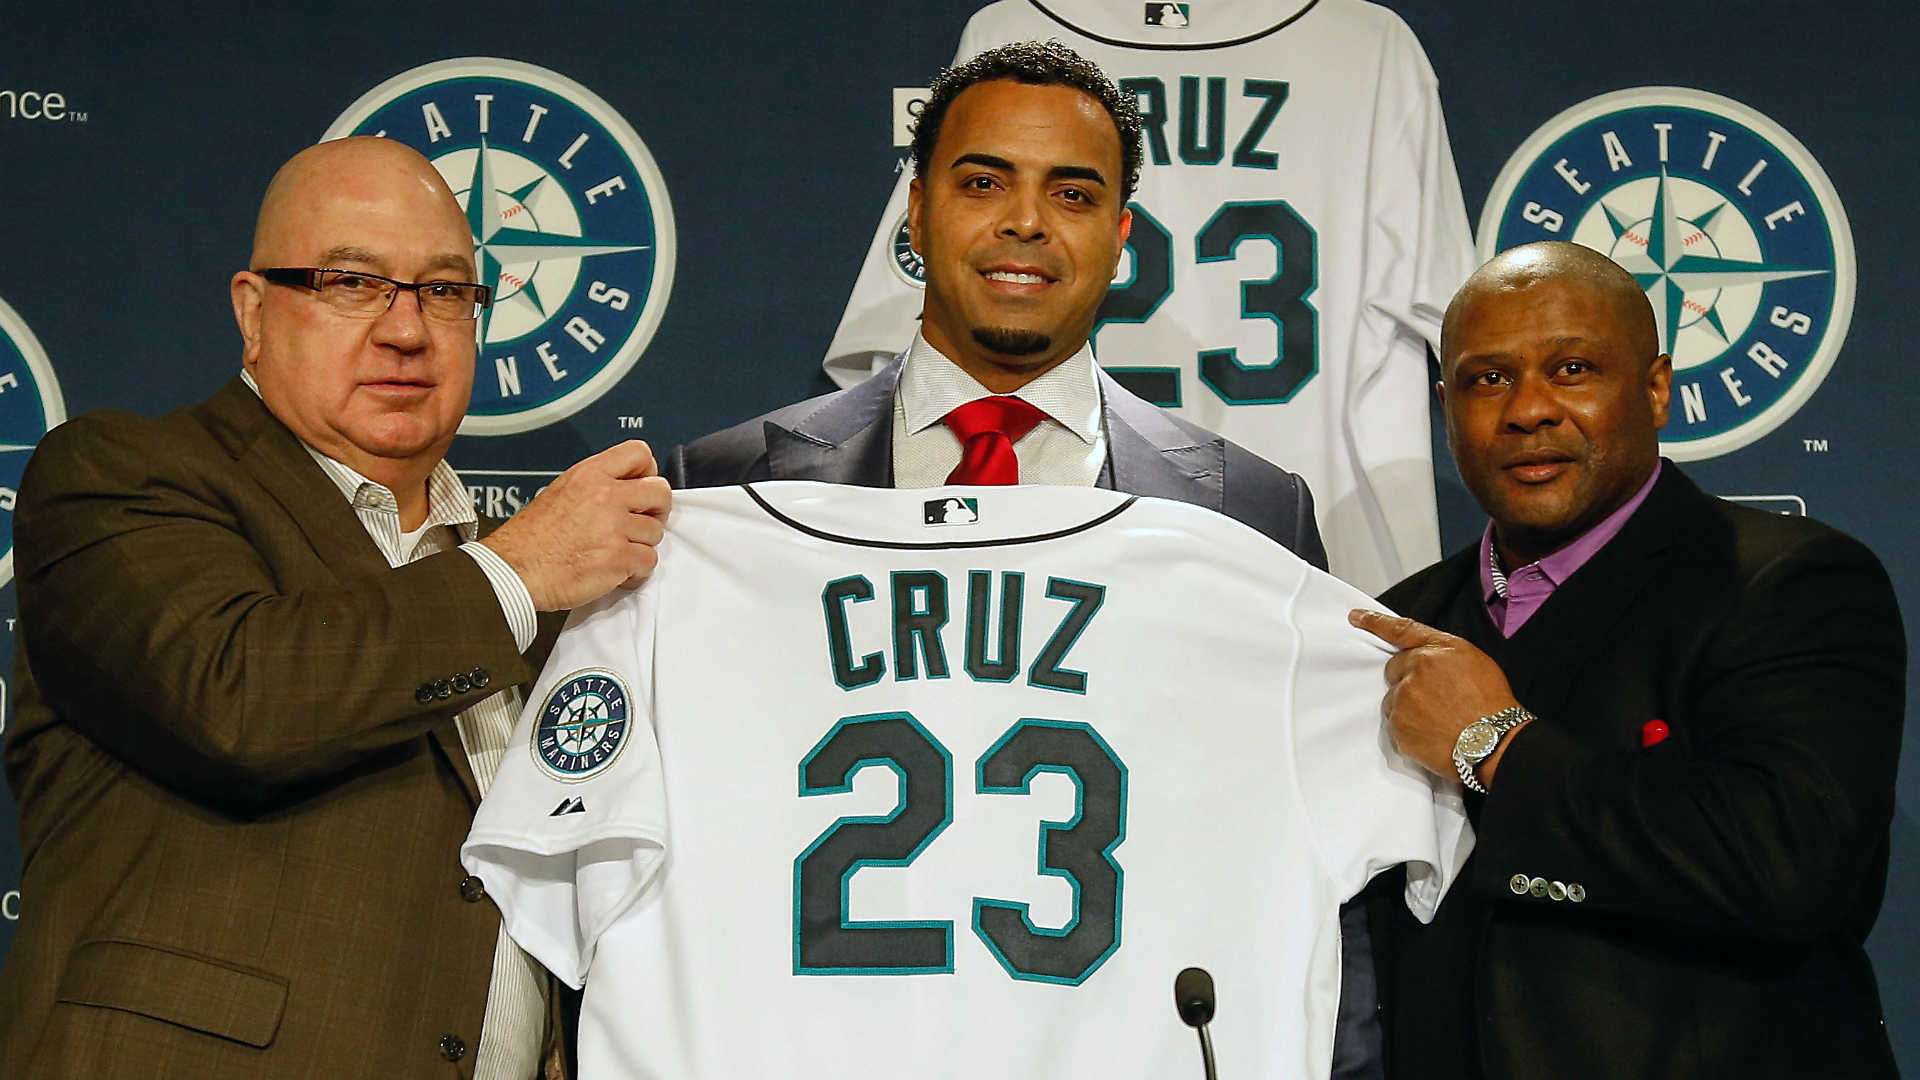 Nelson Cruz has signed a four-year, $57 million deal with the Seattle Mariners.